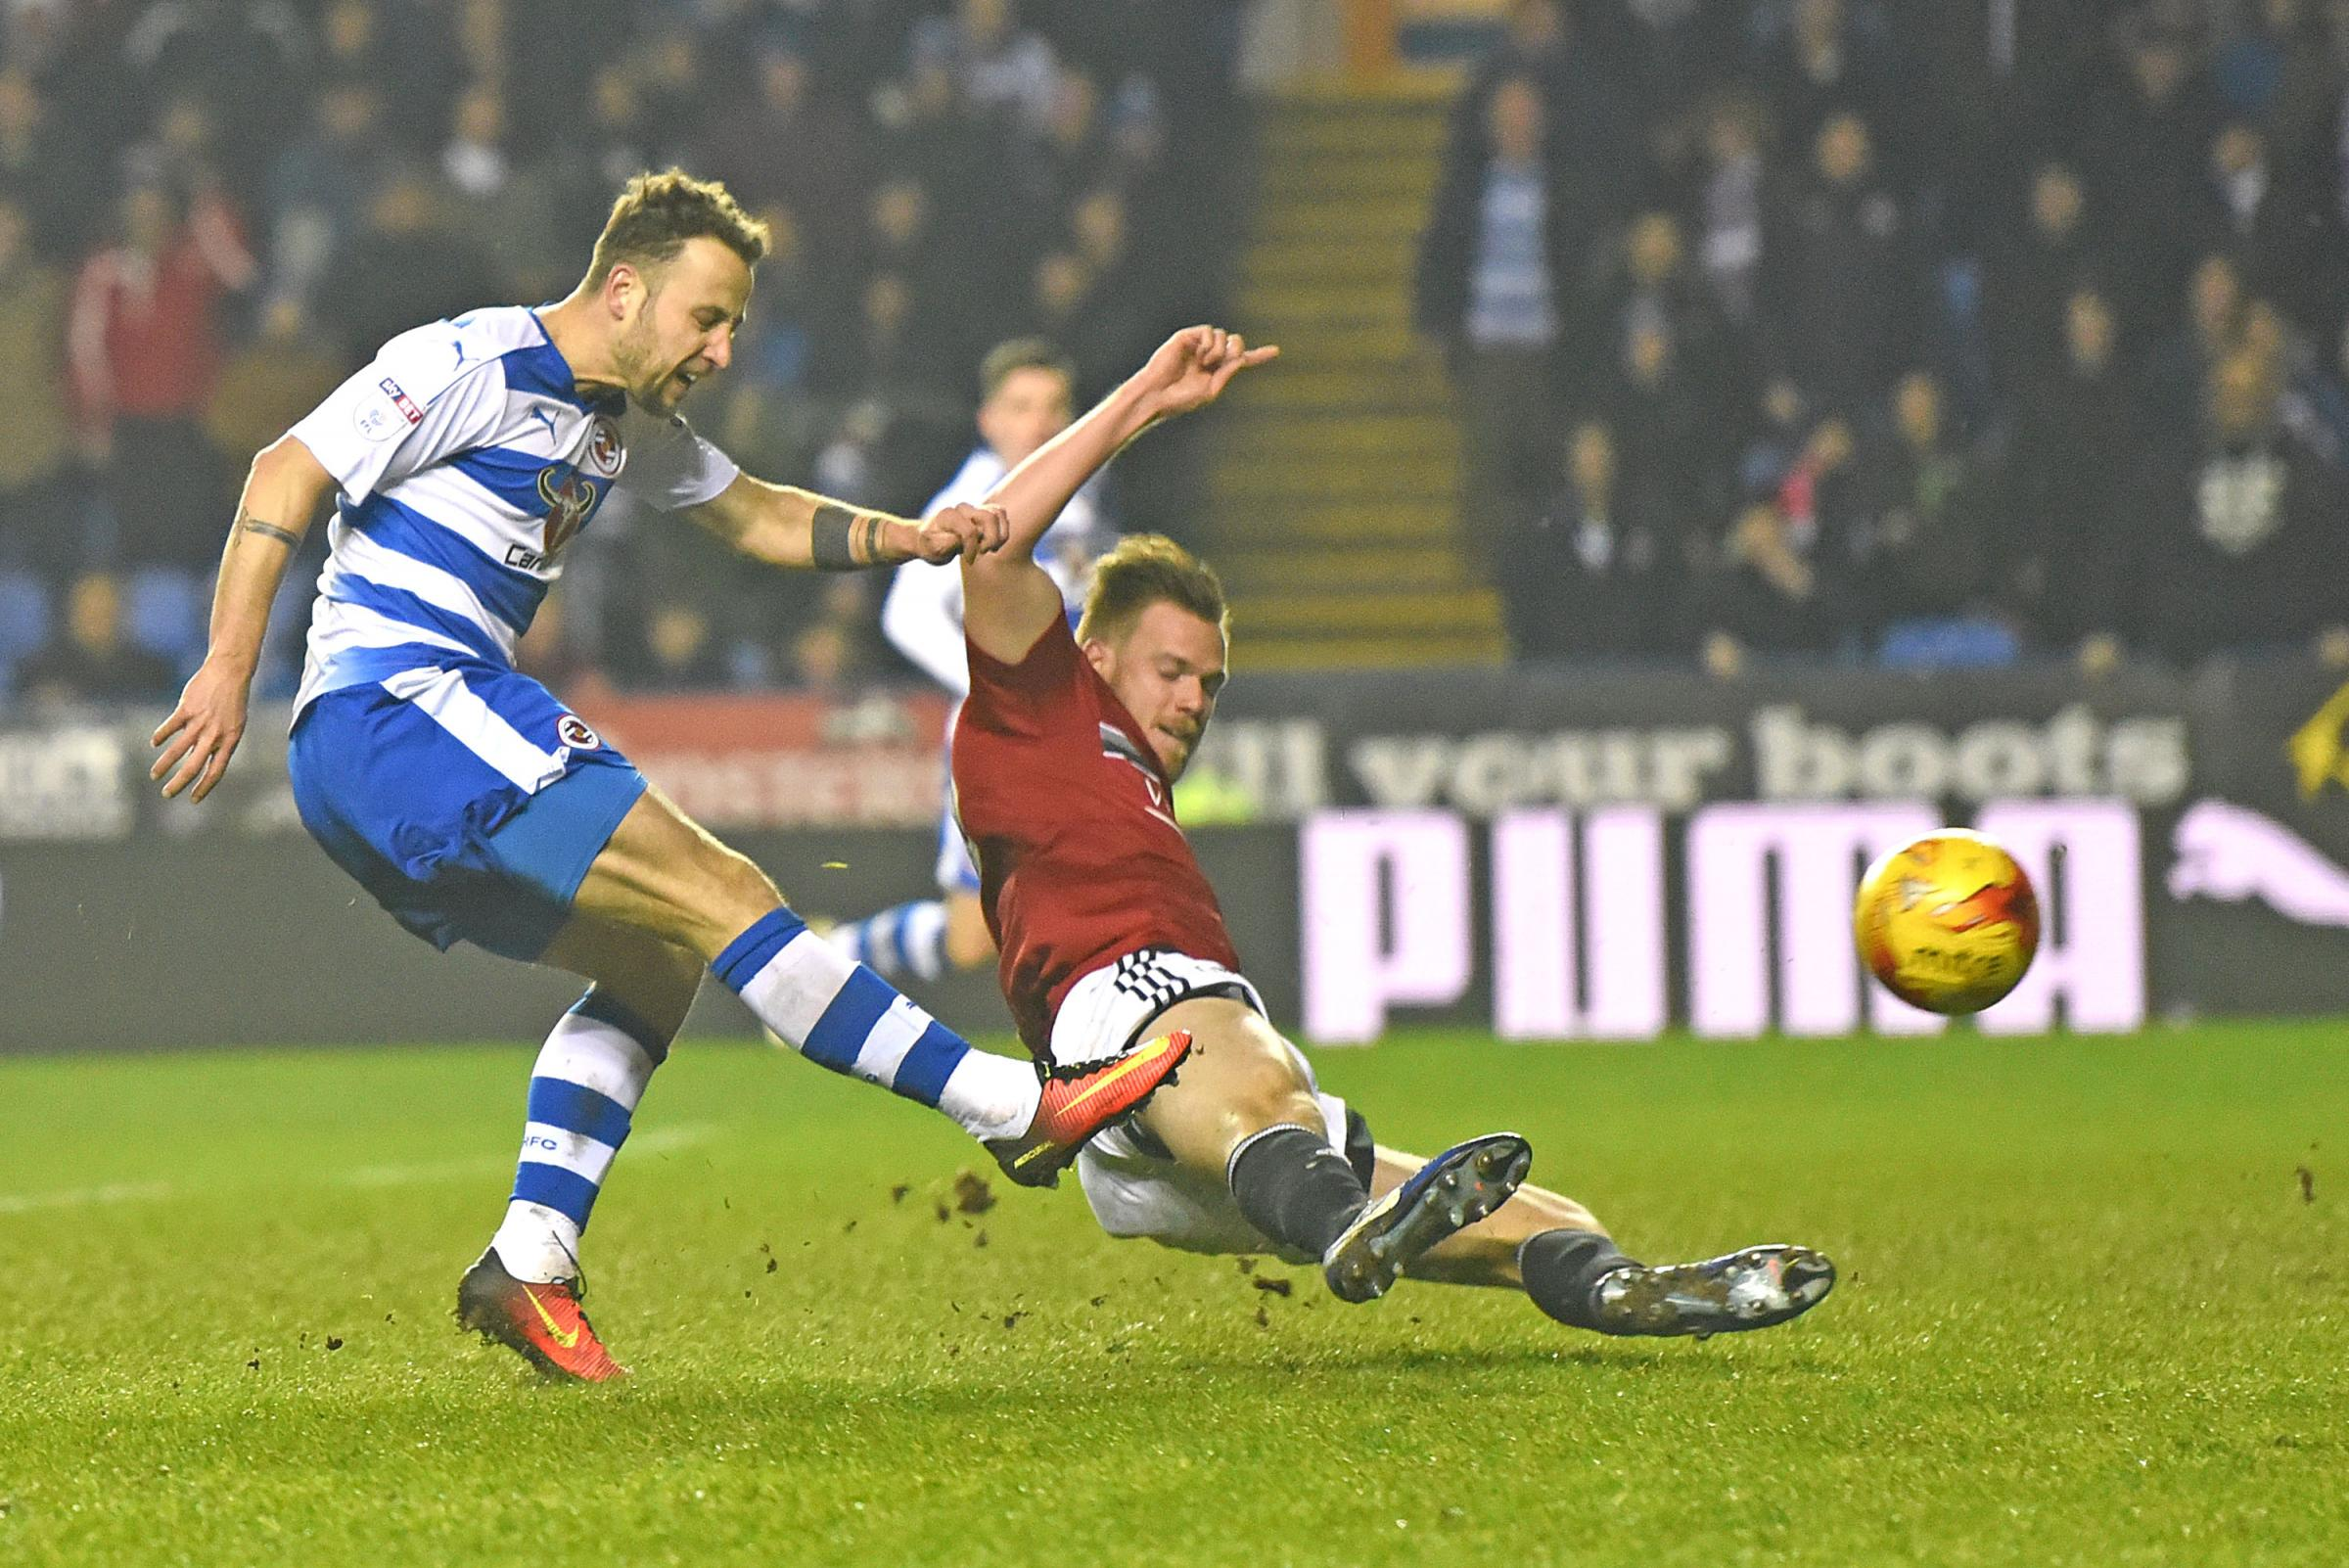 Reading FC: Roy Beerens urges Royals to improve on Barnsley stalemate when ... - Bracknell News